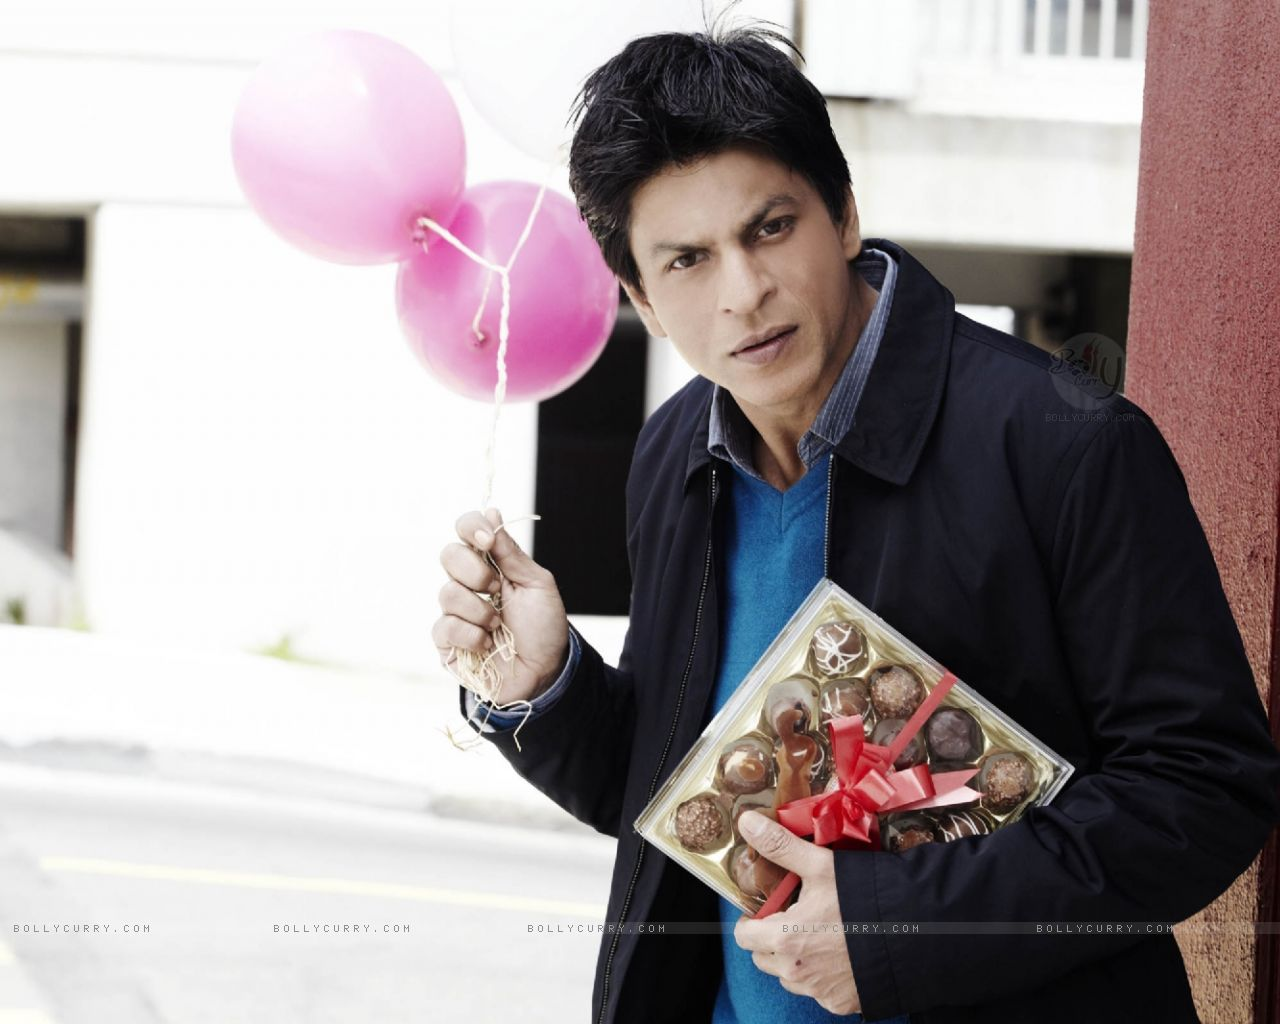 http://4.bp.blogspot.com/_QXFrJOQMexU/TERCEcys1yI/AAAAAAAABPY/7qTB61ccSIo/s1600/40295-shahrukh-khan-in-the-movie-my-name-is-khan.jpg